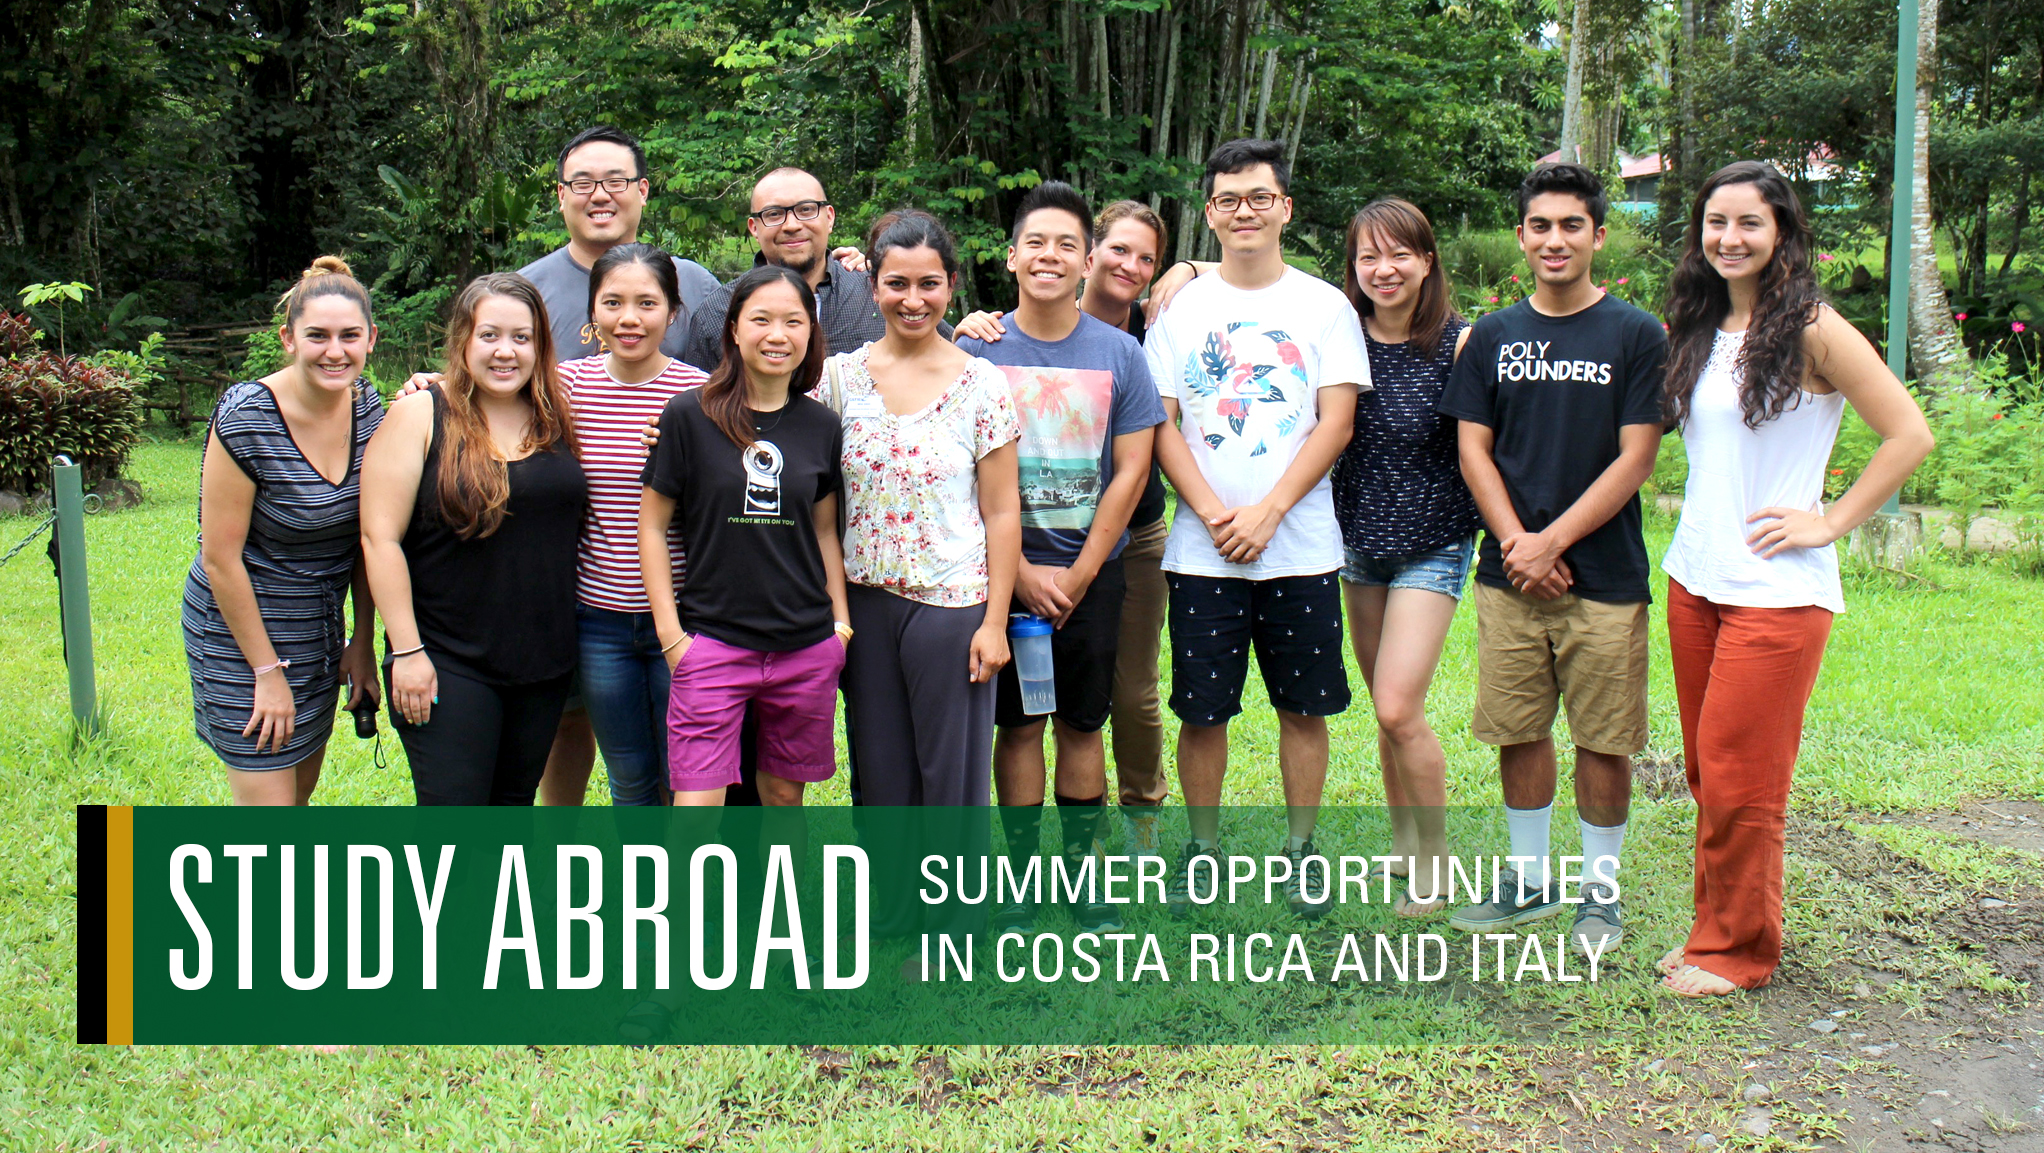 11 Students Spent 3 Weeks in Costa Rica for Sustainable Tourism Study Abroad